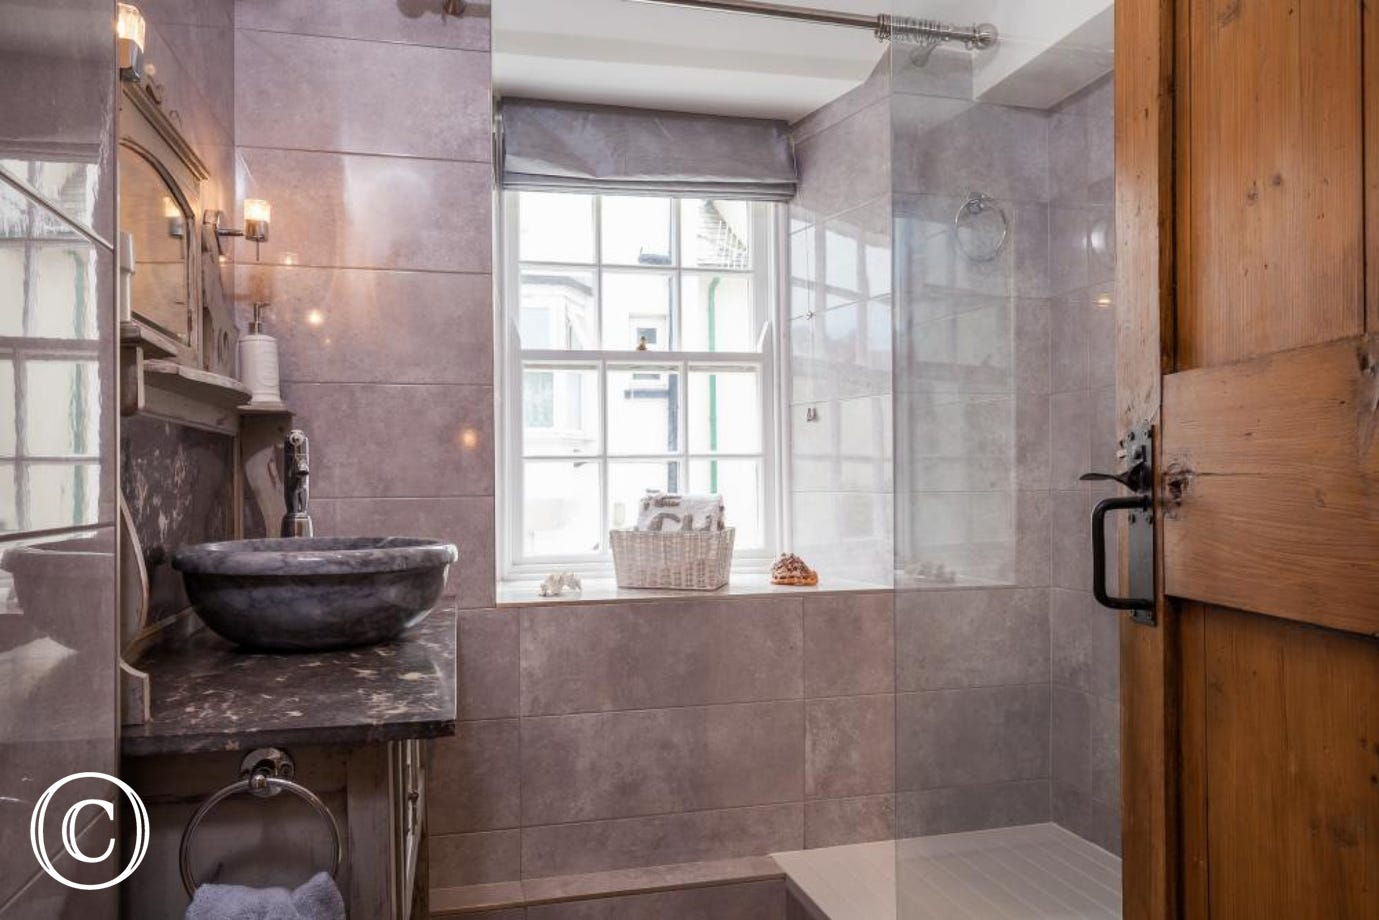 Shower room with large shower with monsoon shower head on the first floor.